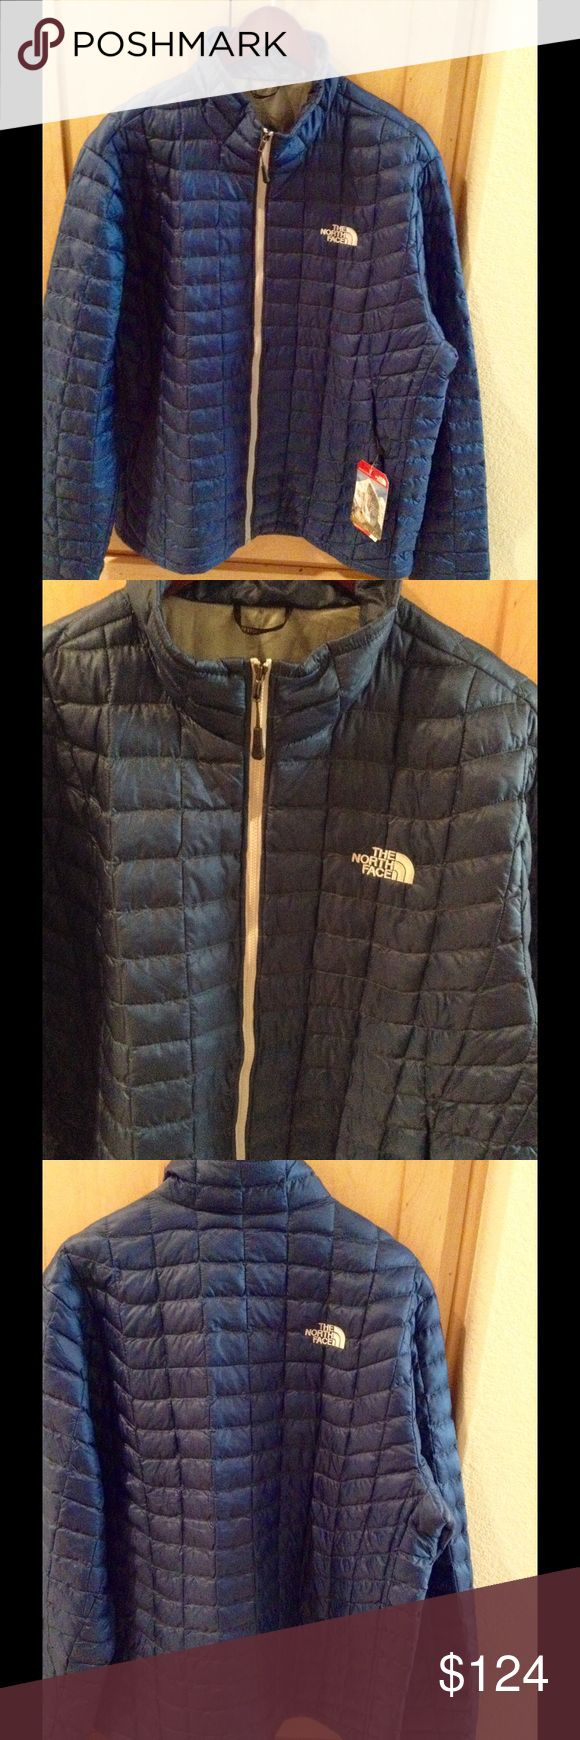 REDUCED!NEW The North Face Men's Thermoball Jacket Brand new Men's Thermoball Jacket in XL in Navy color.  No trade.  Price is firm. The North Face Jackets & Coats